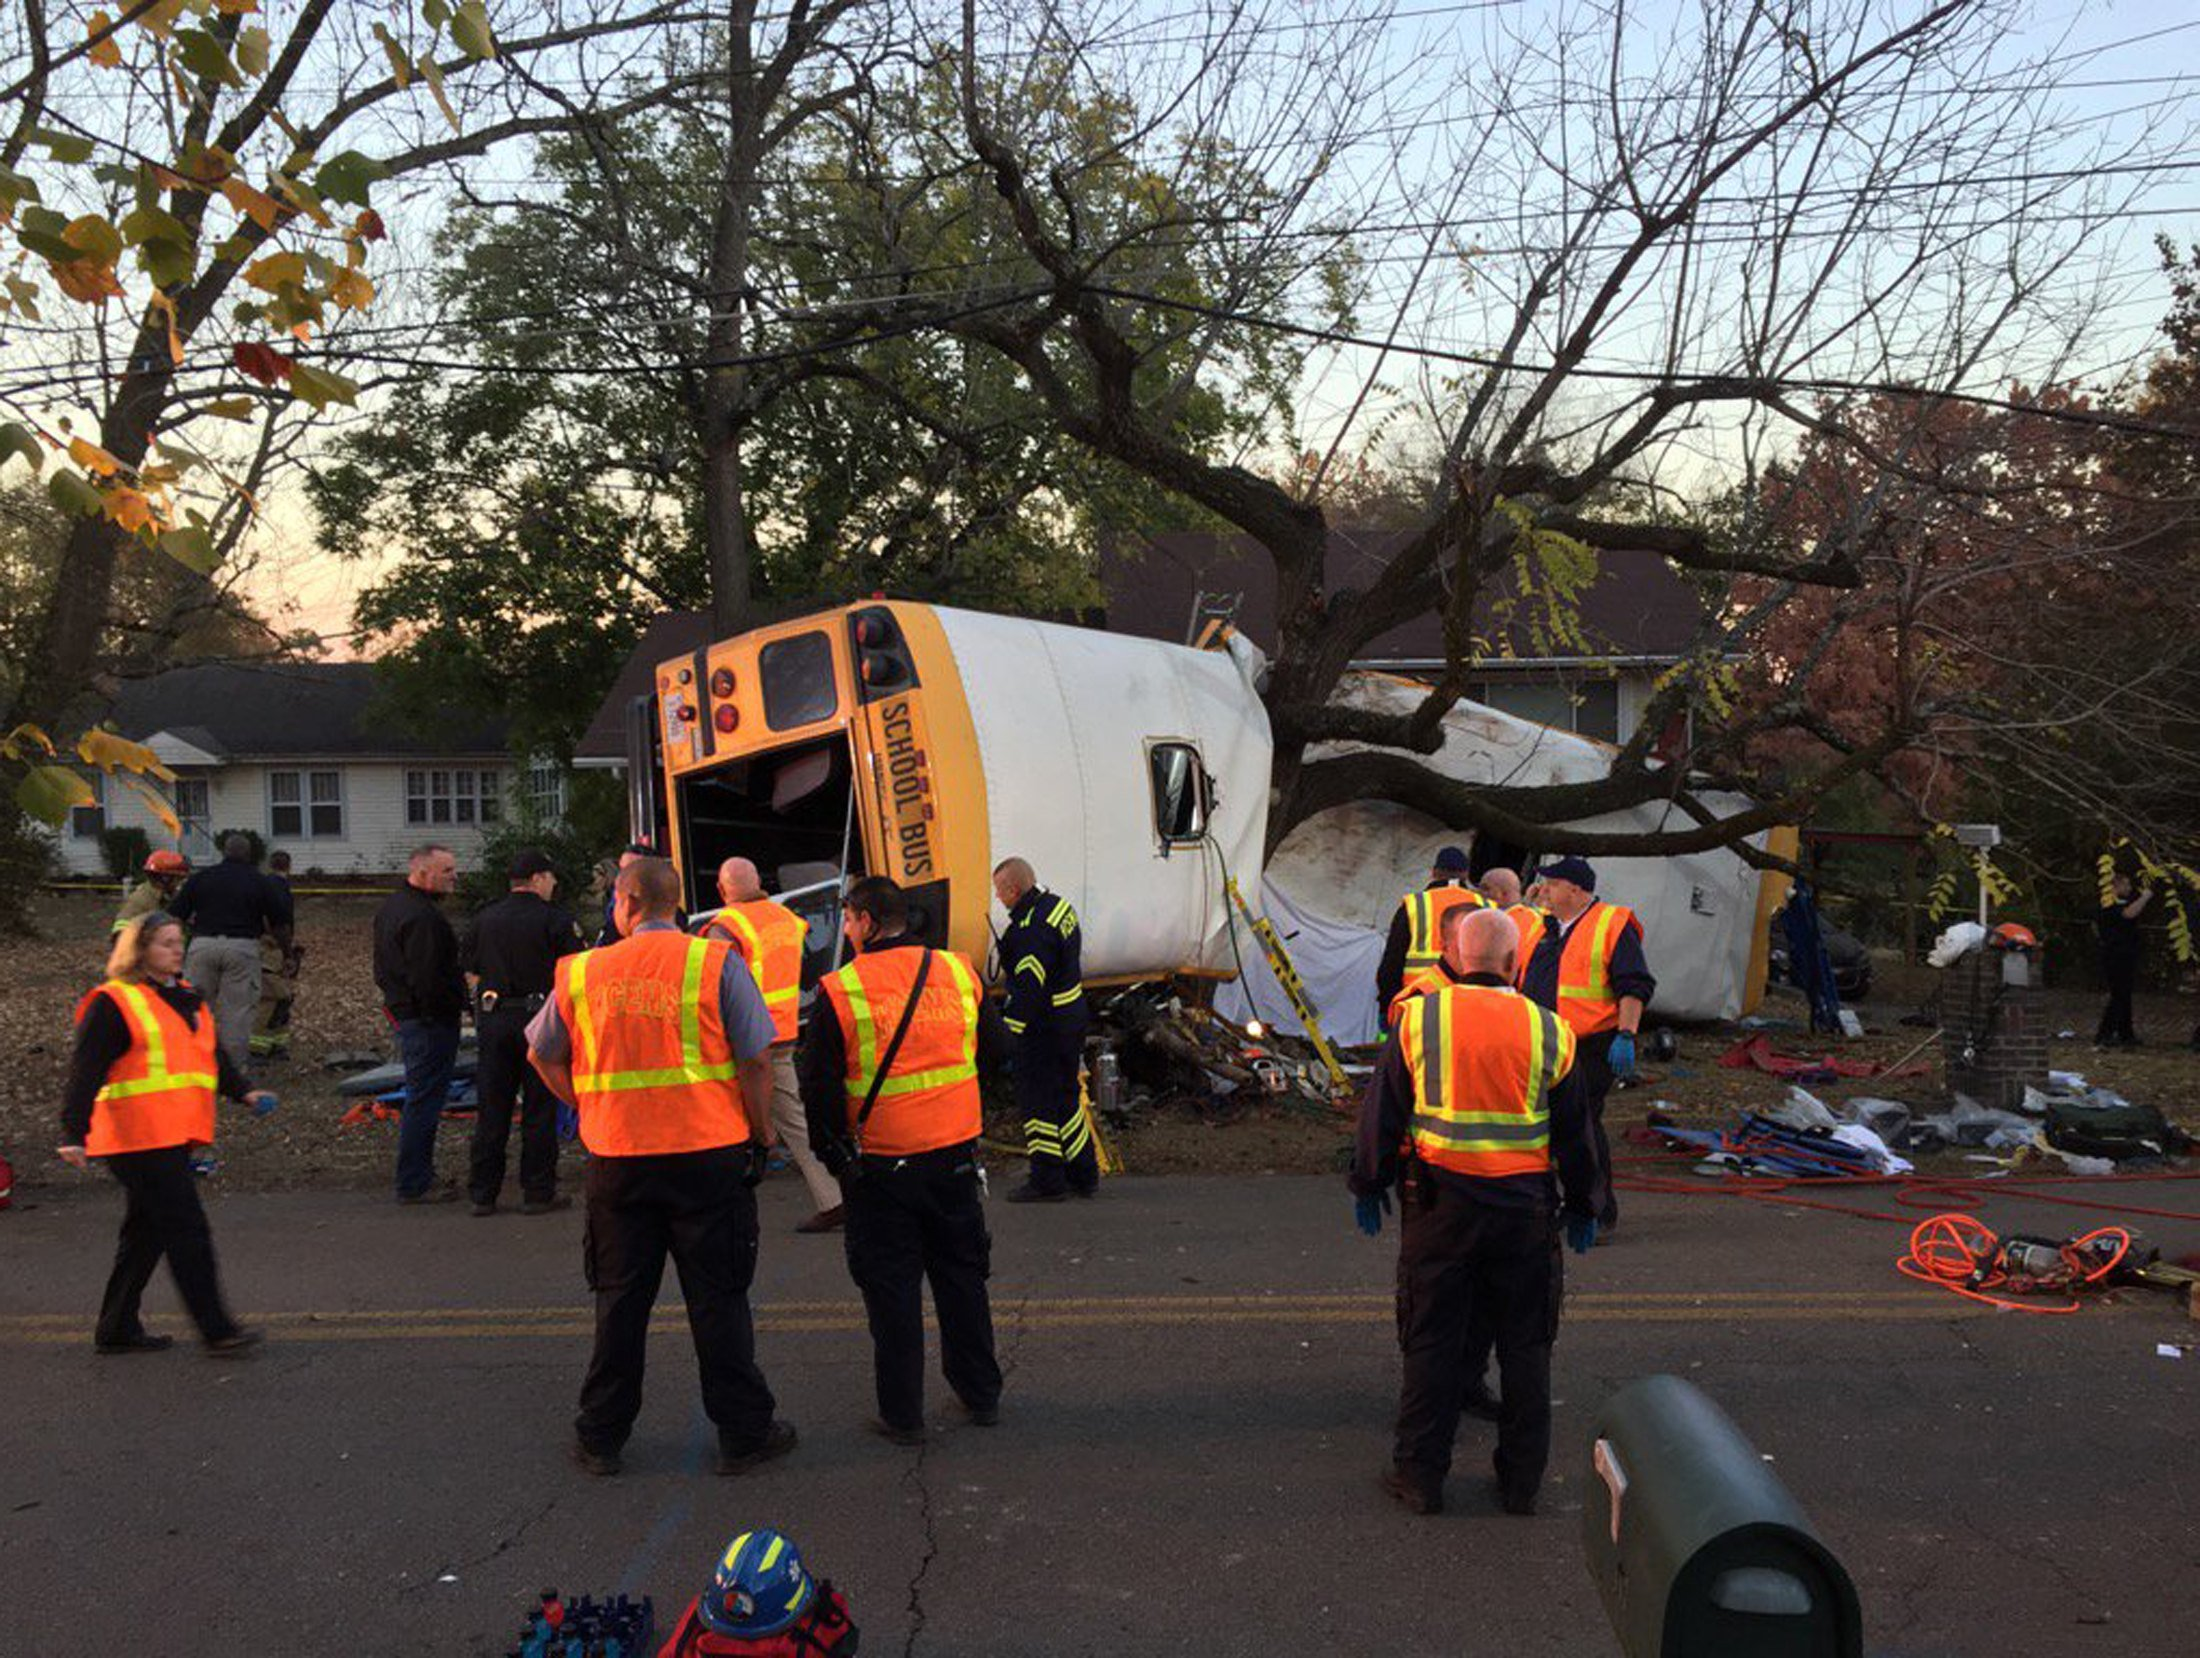 Rescue officials at the scene of a school bus crash involving several fatalities in Chattanooga, Tennessee, U.S., November 21, 2016. Courtesy of Chattanooga Fire Dept/Handout via REUTERS ATTENTION EDITORS - THIS IMAGE WAS PROVIDED BY A THIRD PARTY. EDITORIAL USE ONLY